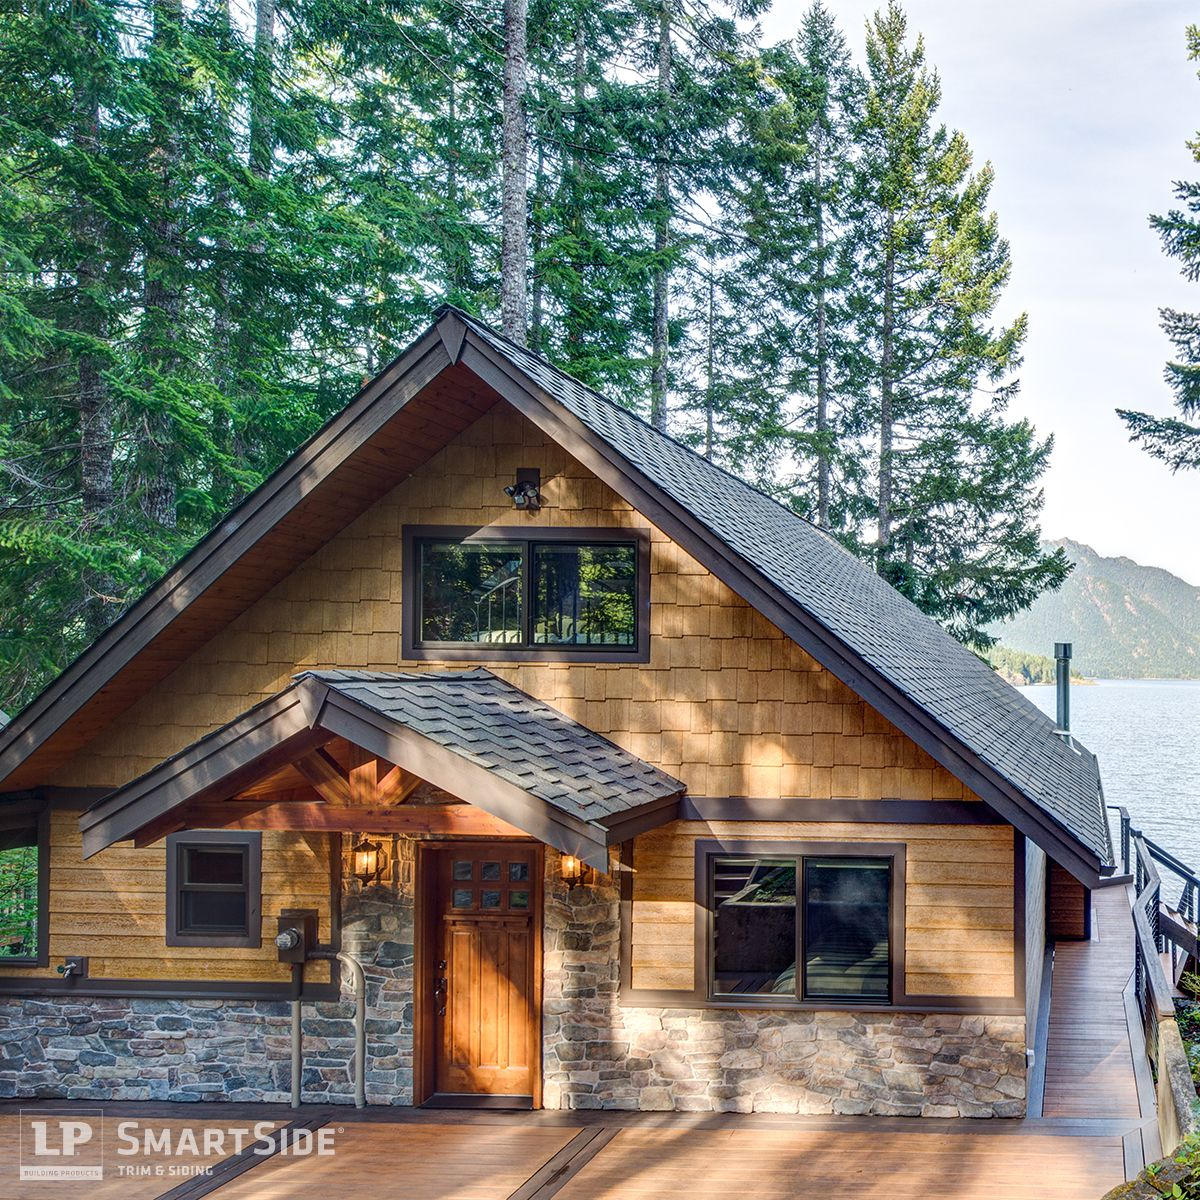 Lp Smartside Cedar Shakes Can Help You Create A Variety Of